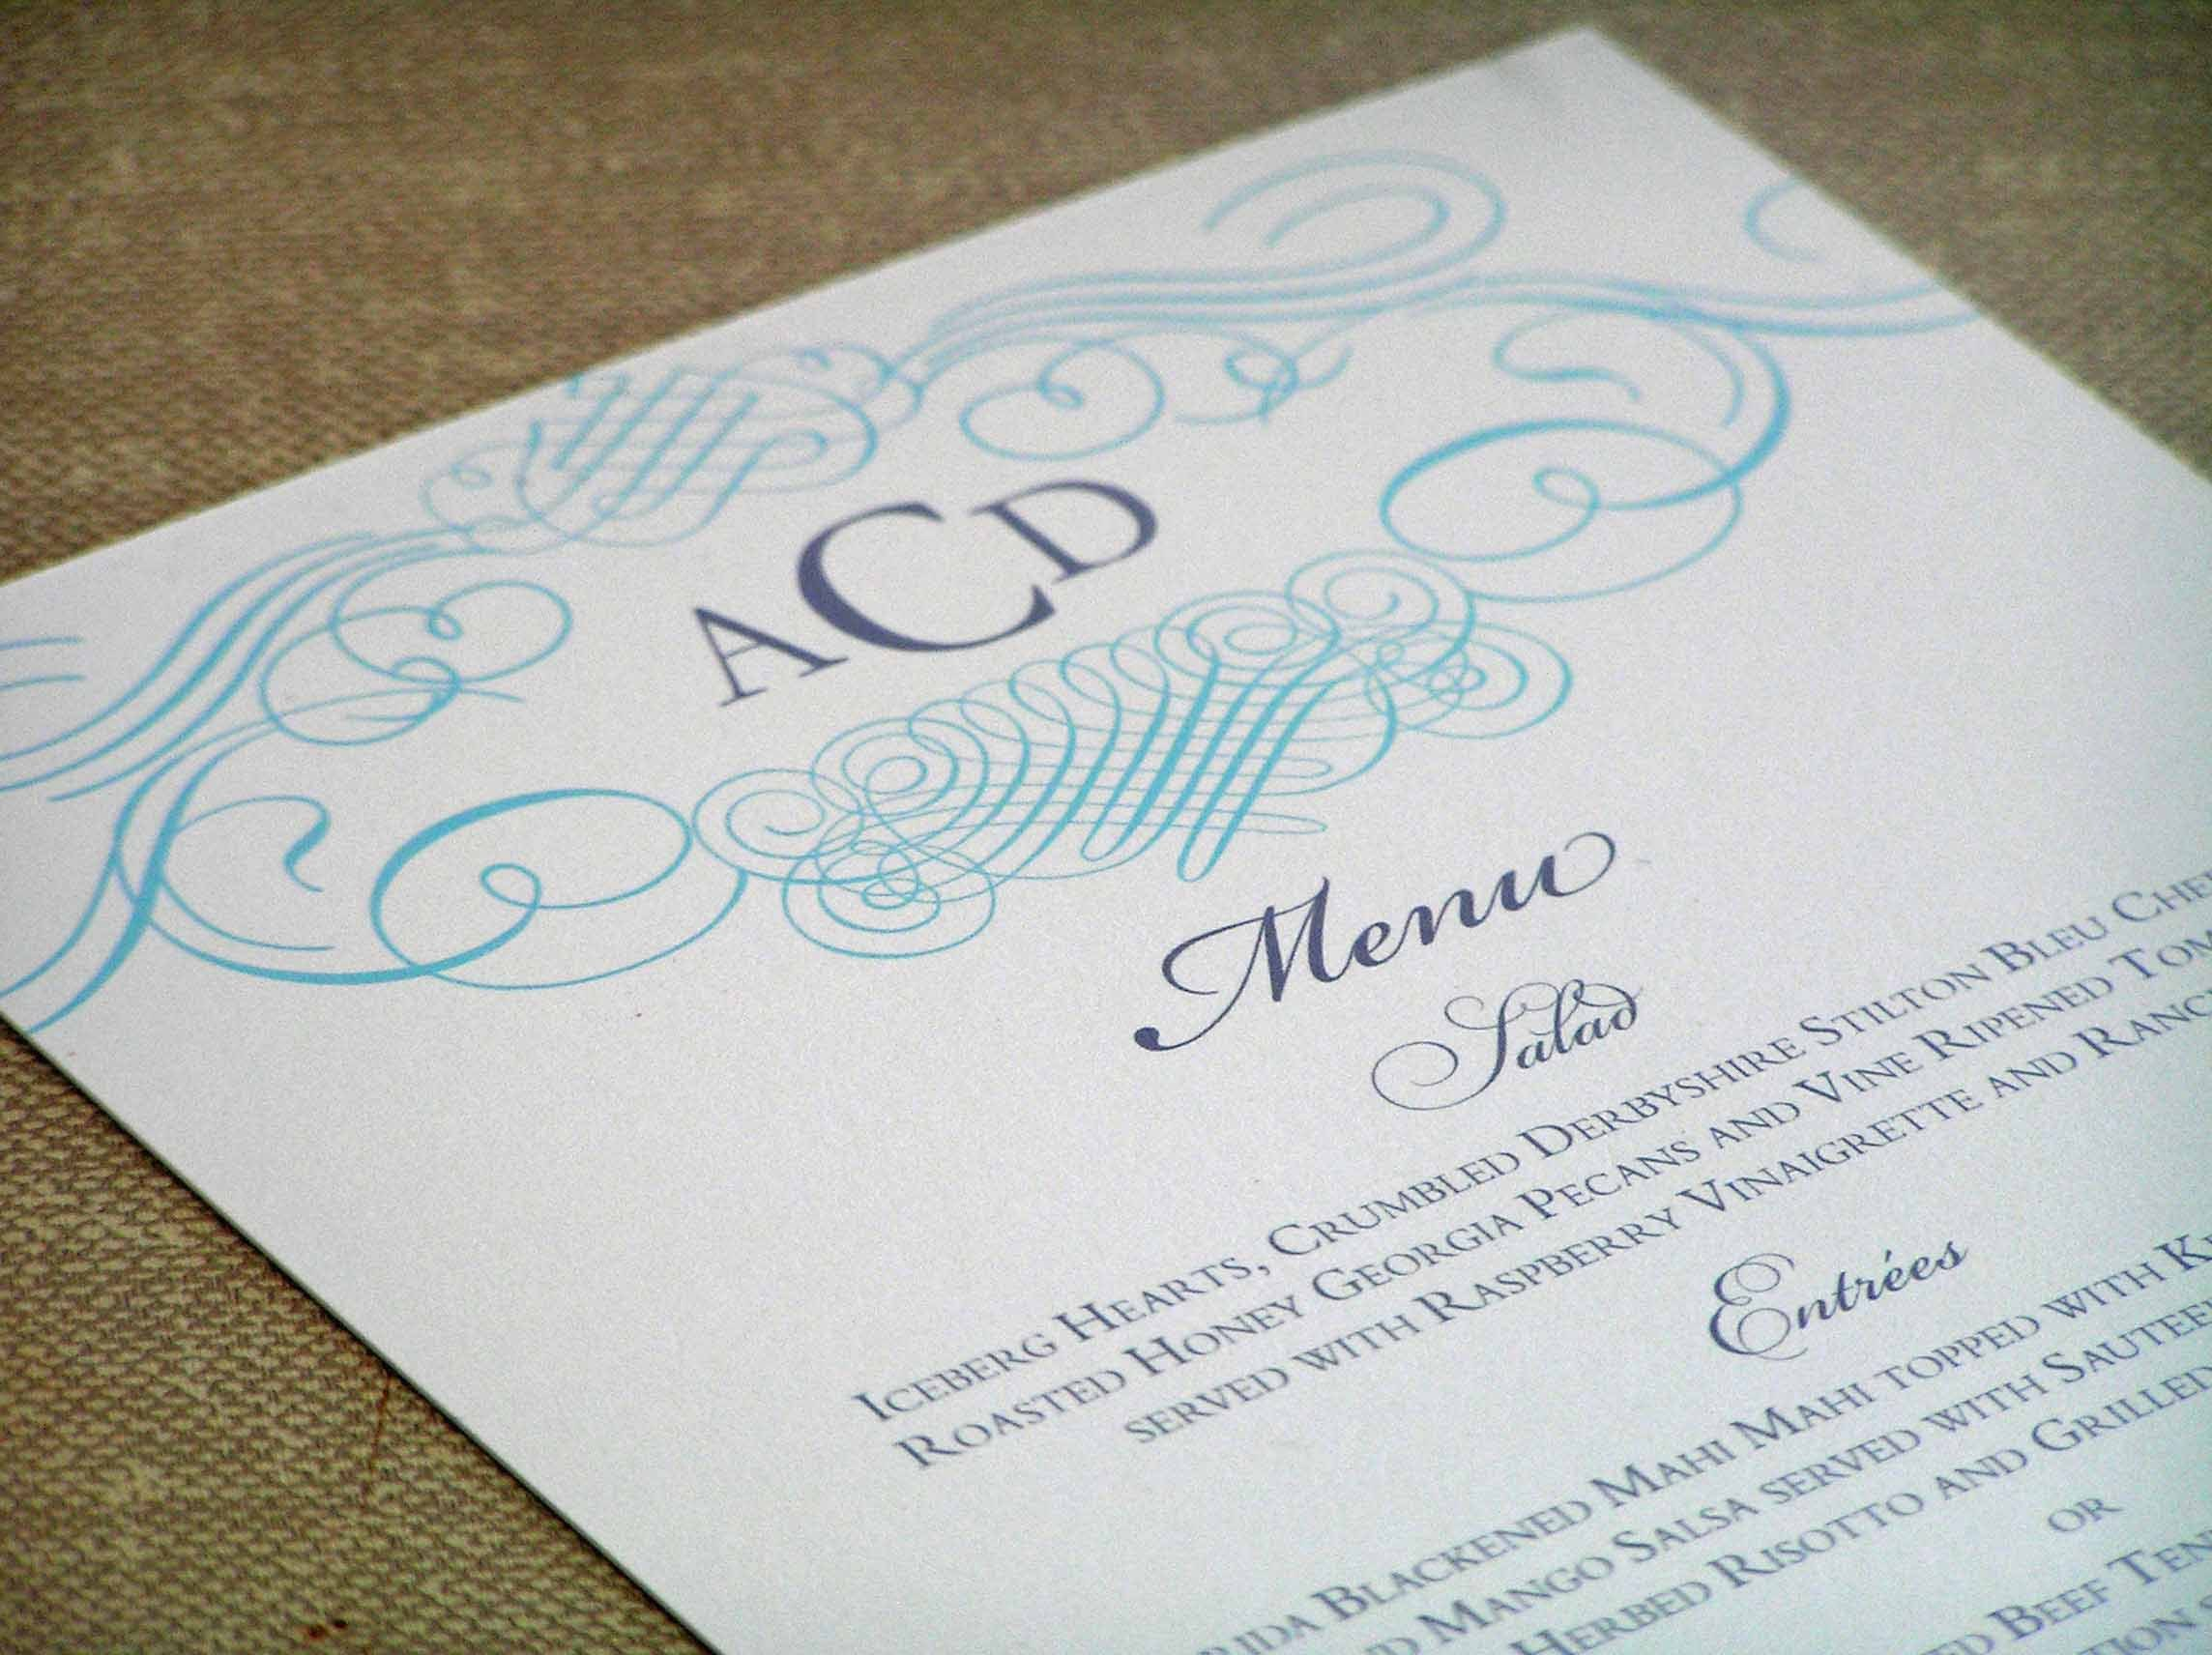 Inspiration, Calligraphy, Stationery, white, Invitations, Menu, Monogram, Board, 2bsquared designs